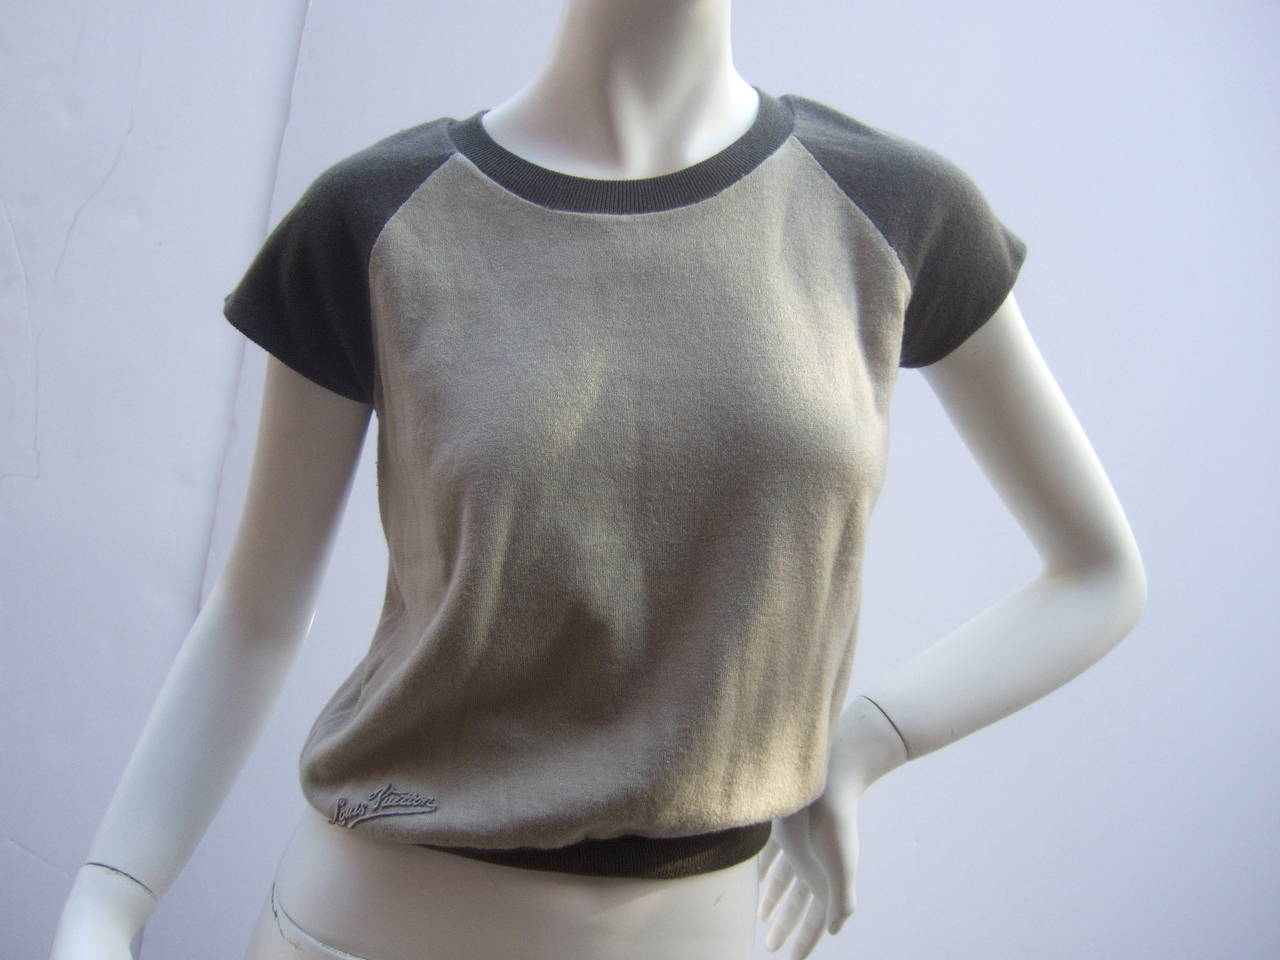 Louis Vuitton Cashmere & Cotton Knit Top Made in Italy Size M 5